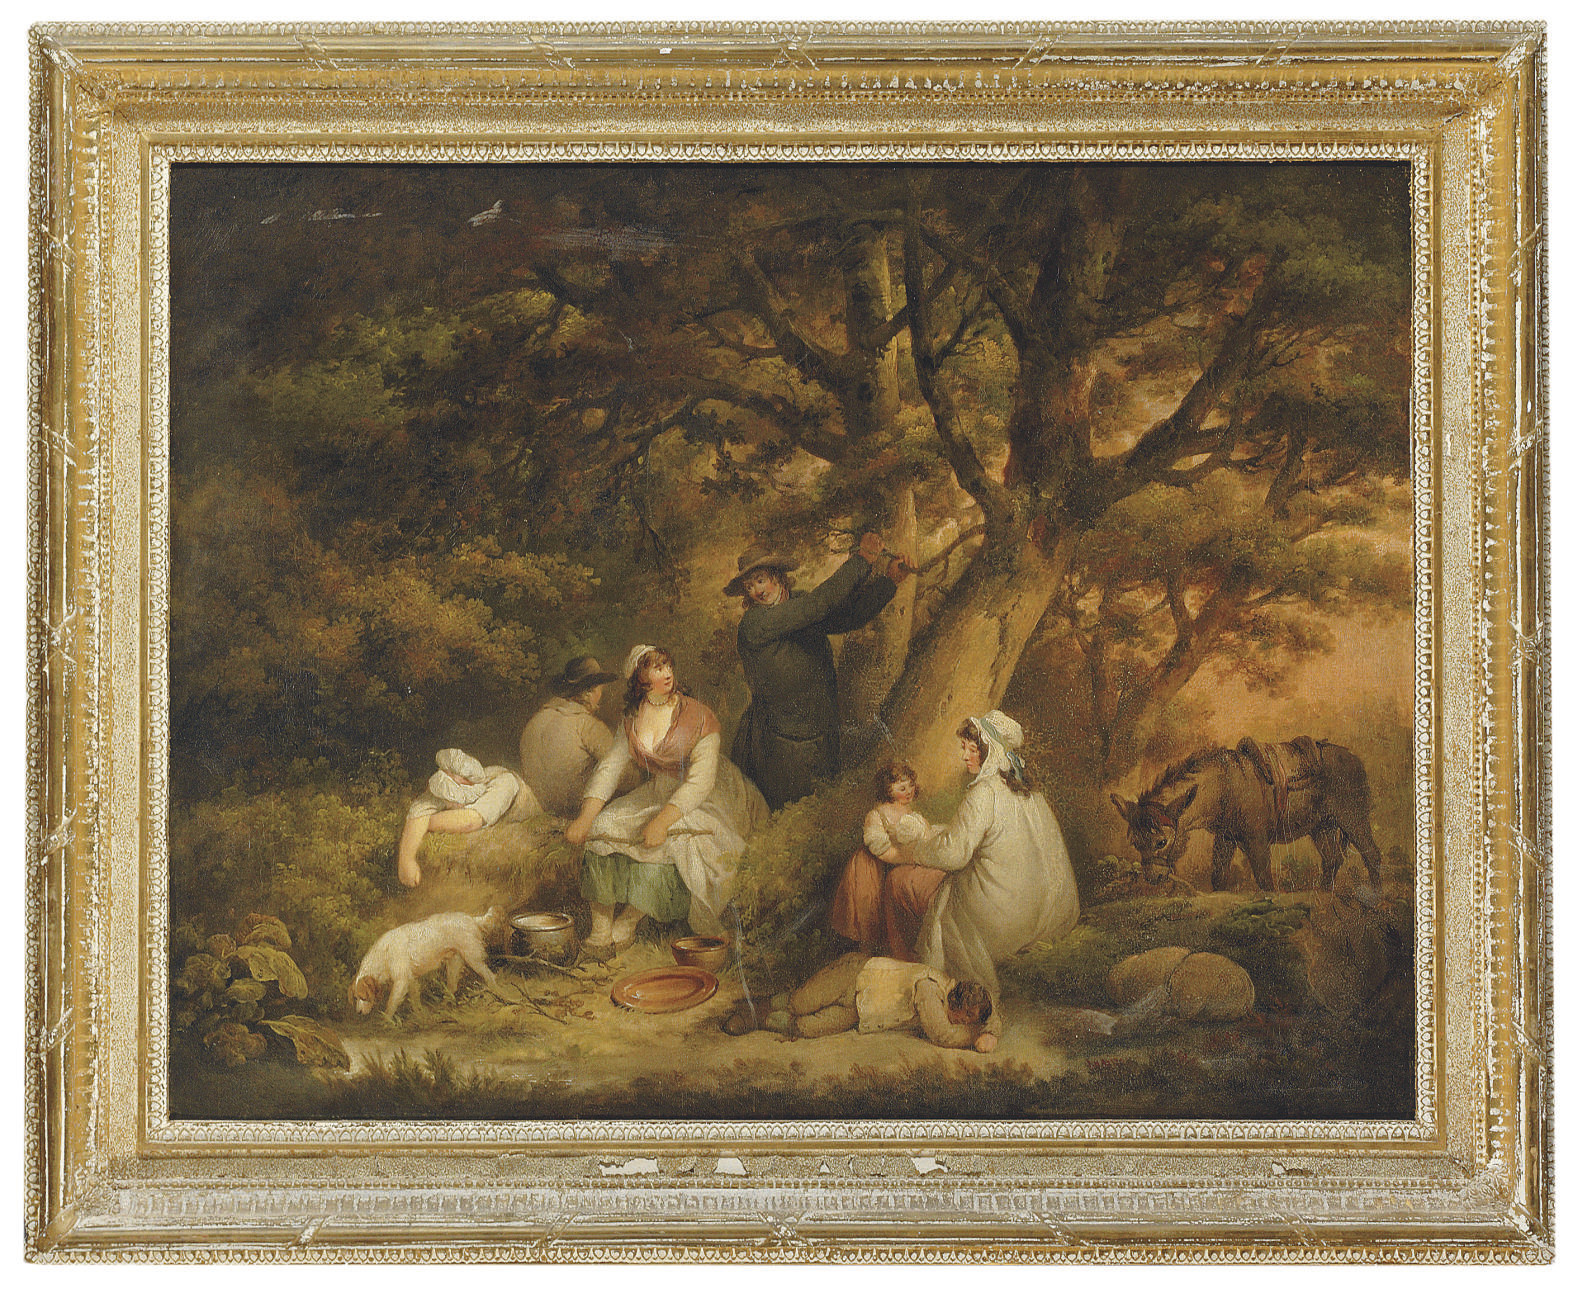 Figures gathered in a woodland clearing